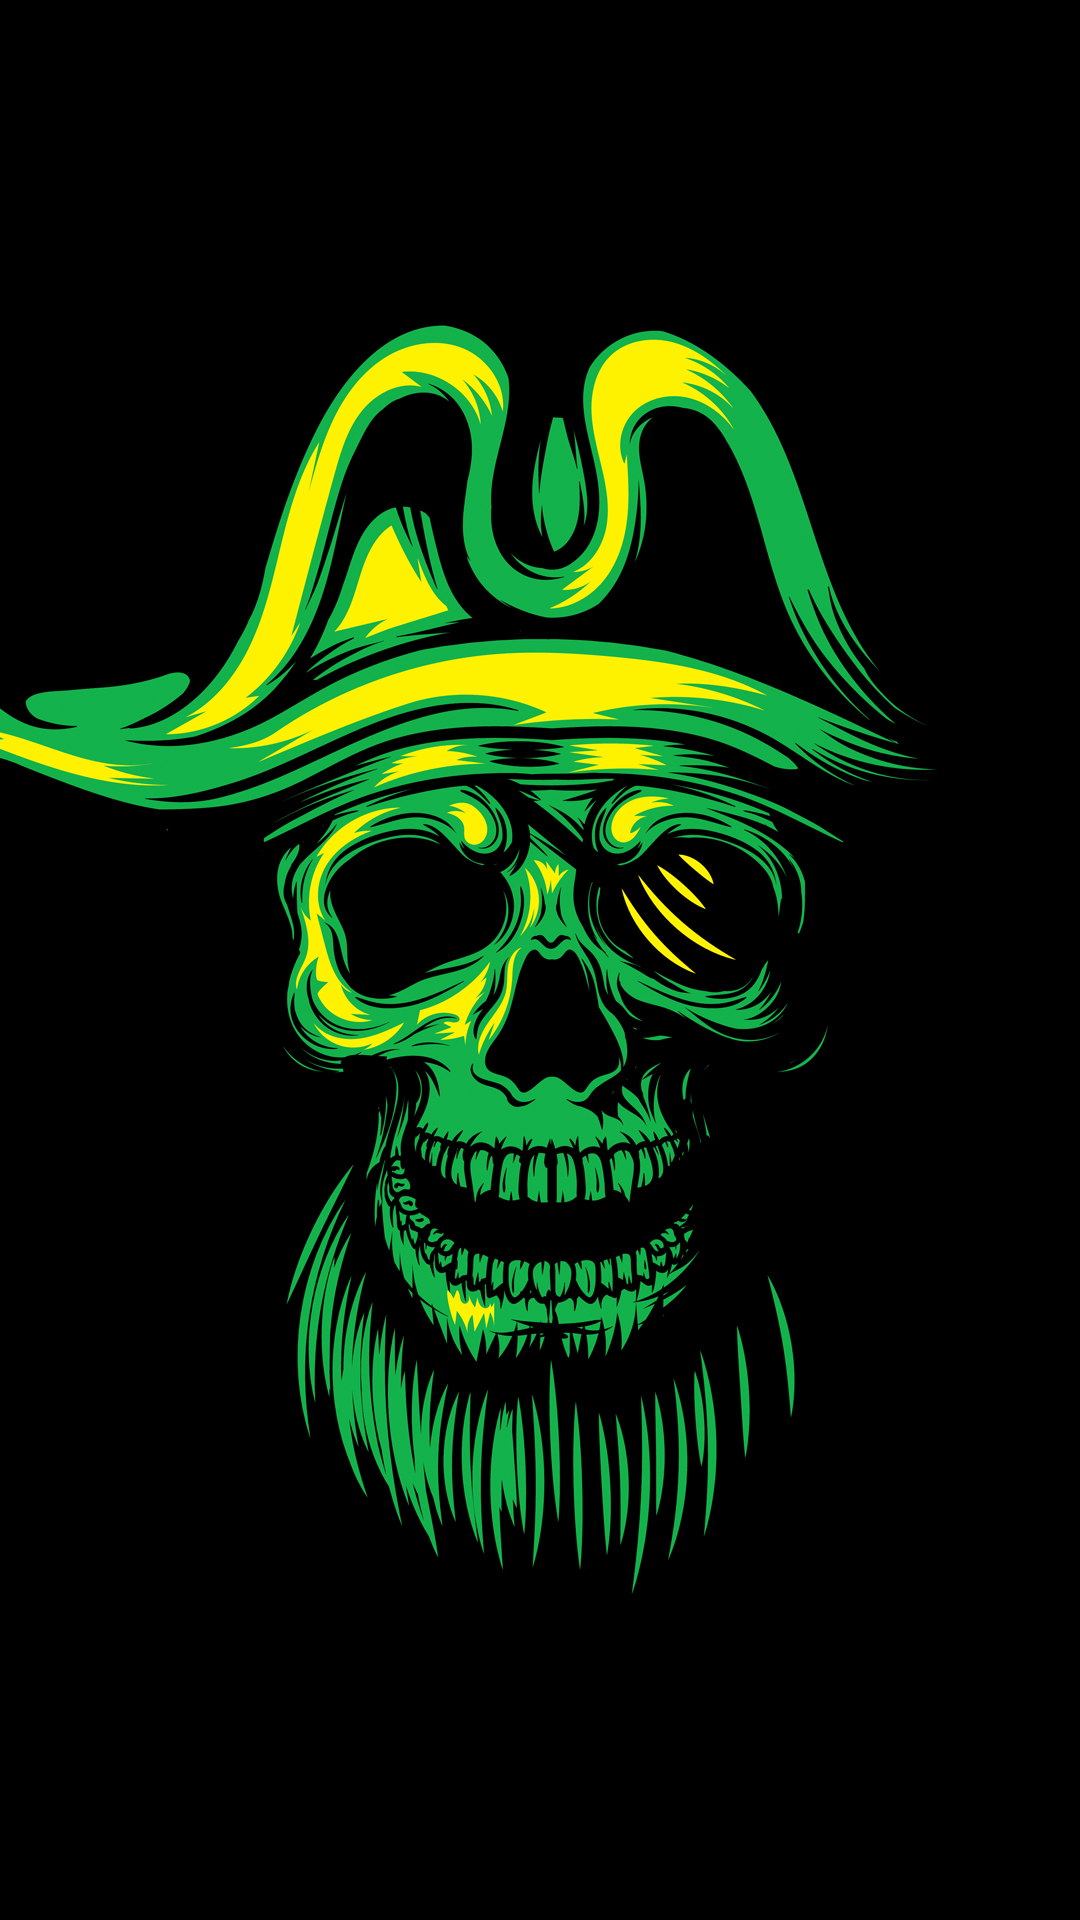 Pirate Skull 1080 X 1920 FHD Wallpaper